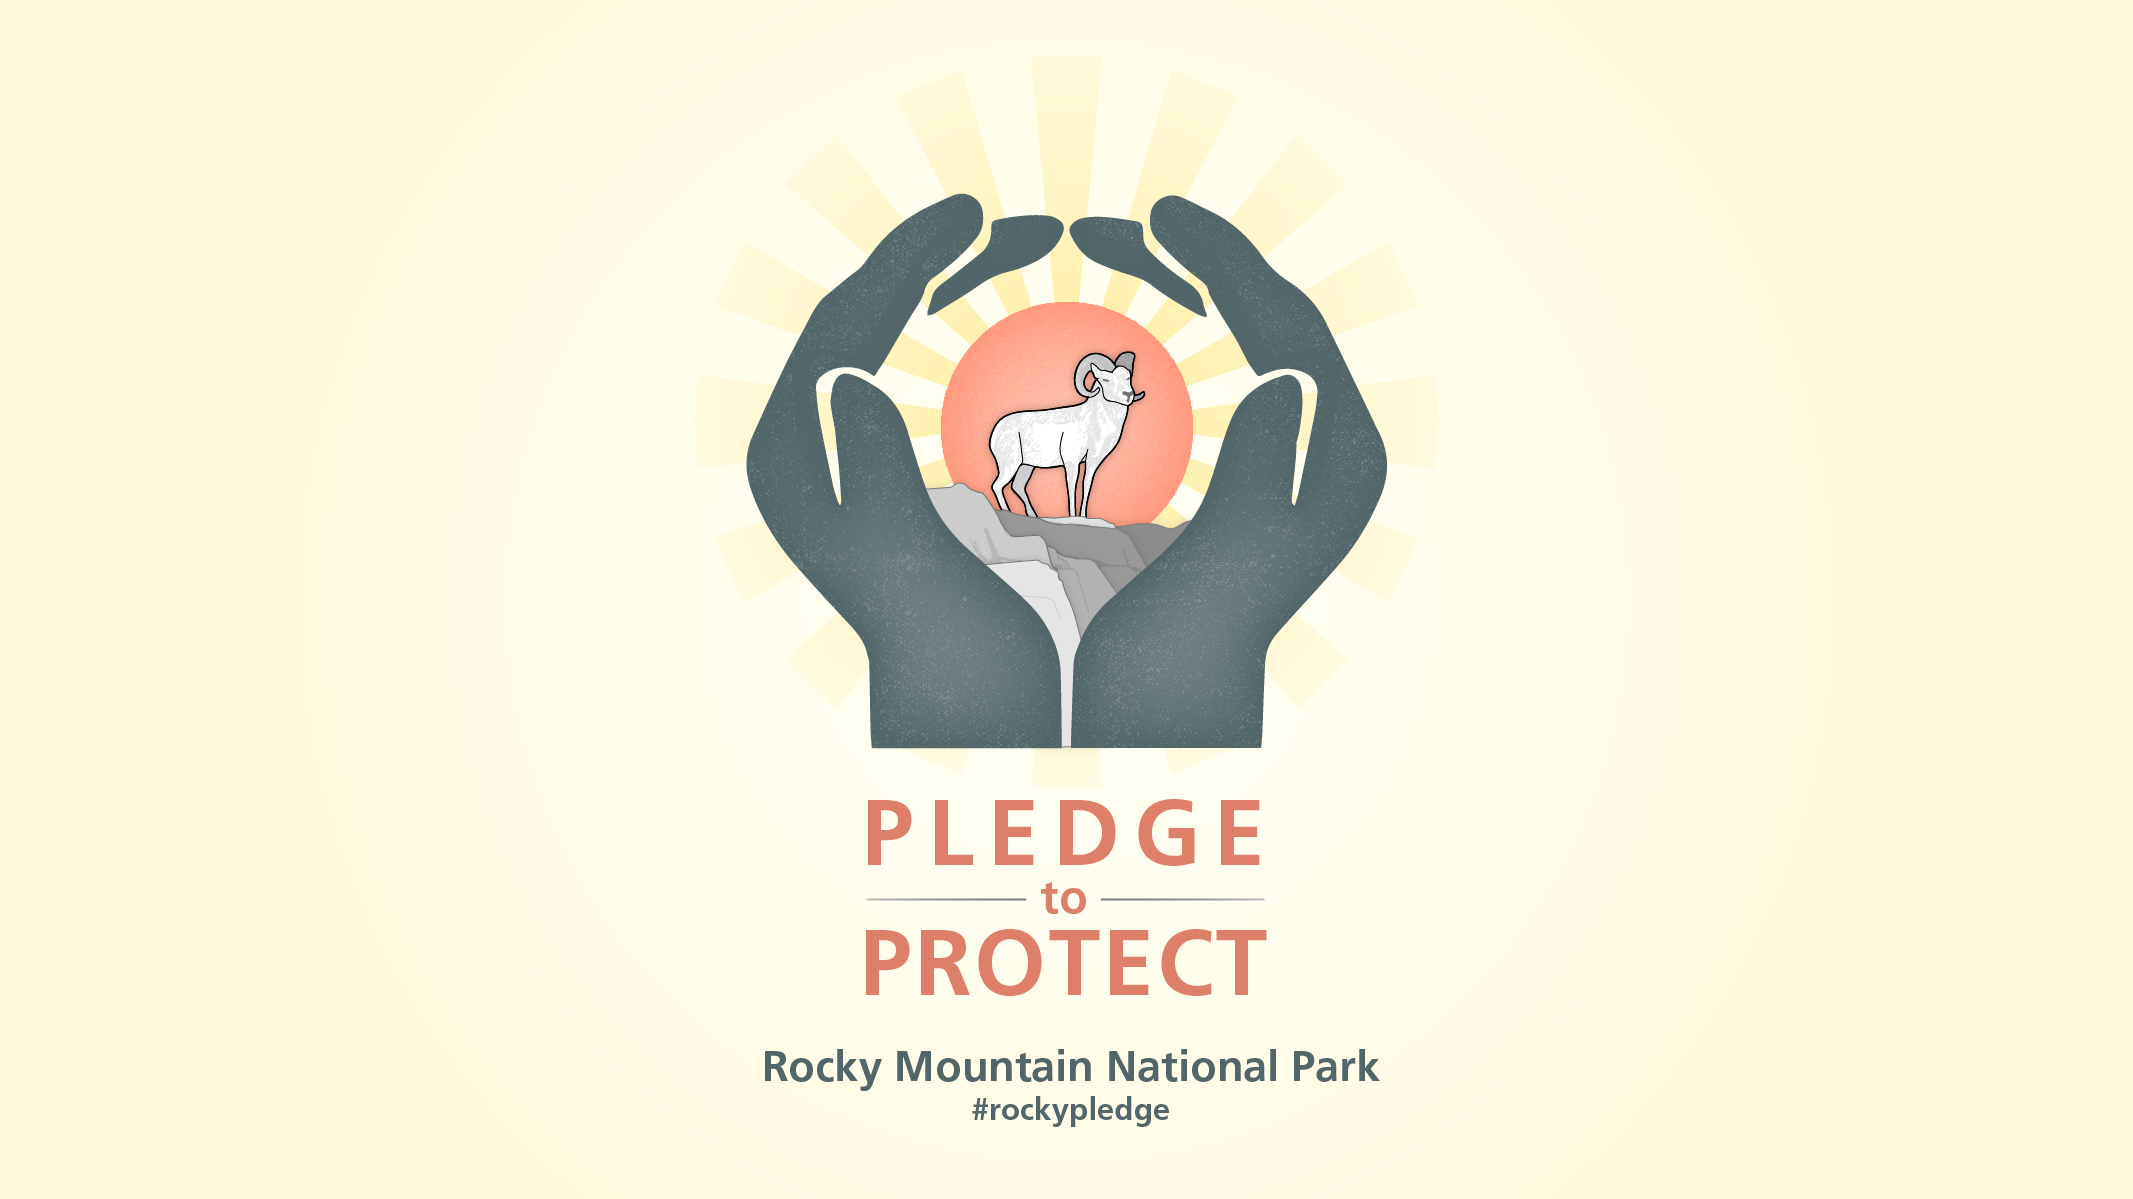 An illustrated logo. Hands encircle a bighorn standing on rocks in front of a radiant sun